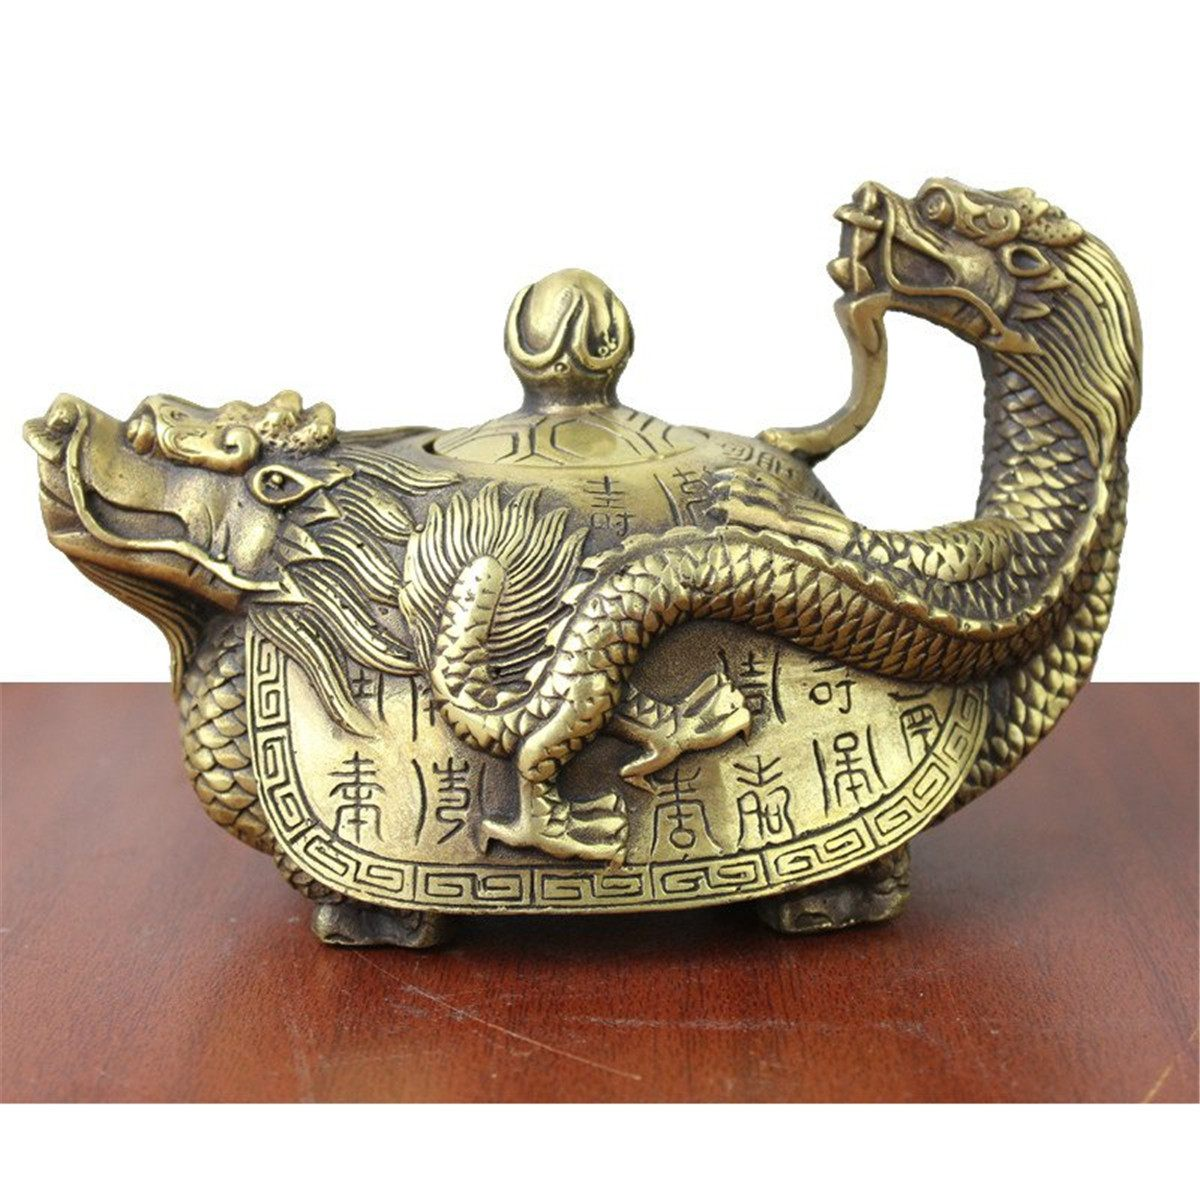 Chinese Pure Brass Teapot Vintage Copper Dragon Tea Pot Flagon Handmade Artwork Figurines Miniatures Gifts Decoration Crafts